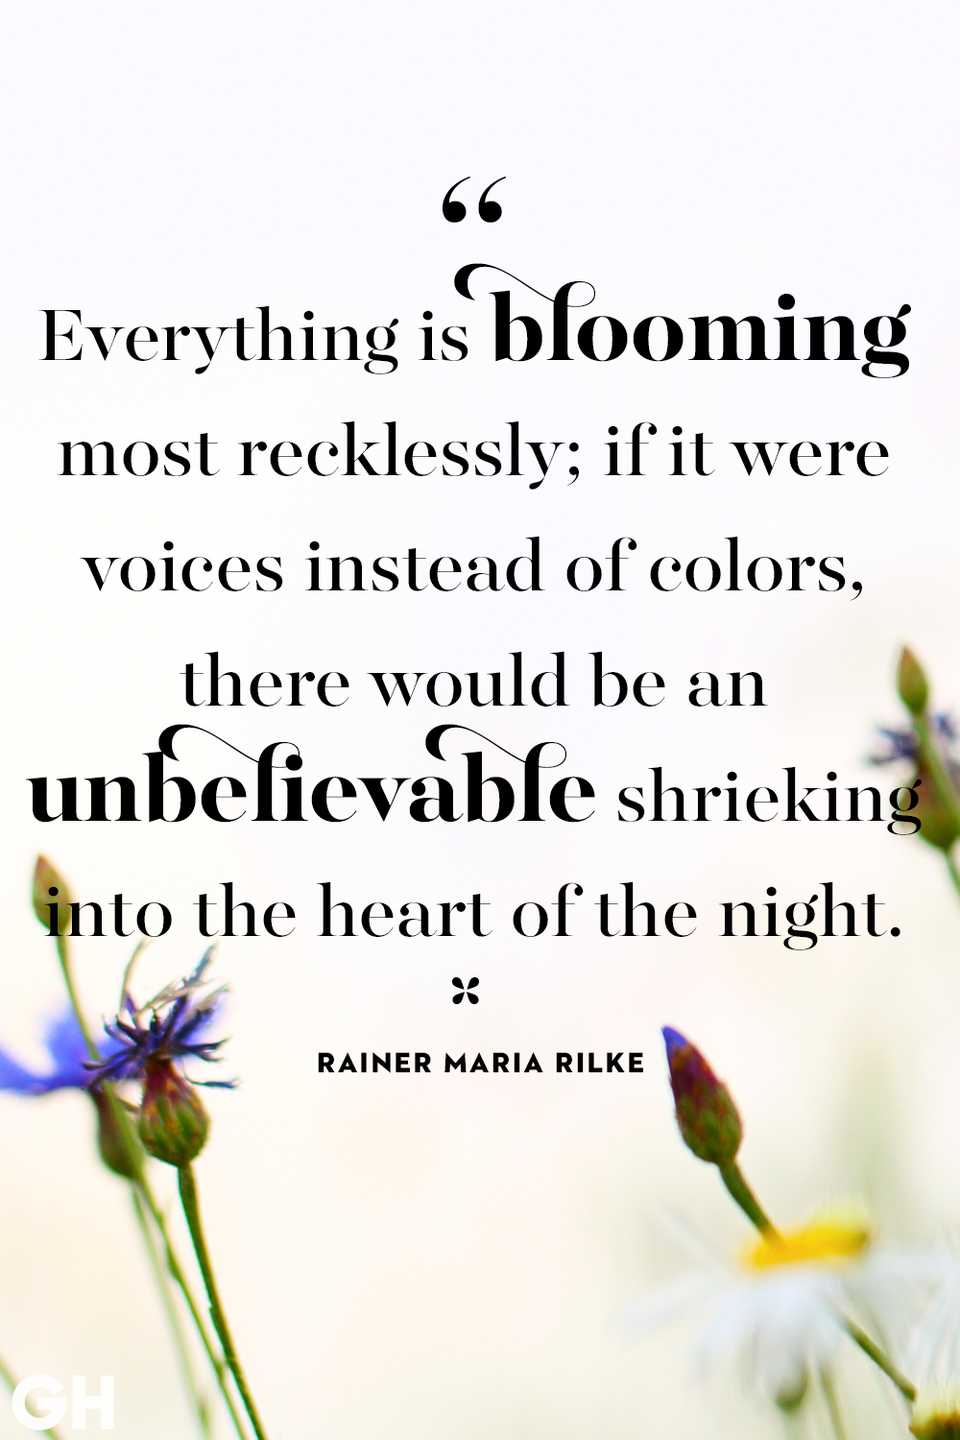 <p>Everything is blooming most recklessly; if it were voices instead of colors, there would be an unbelievable shrieking into the heart of the night. </p>